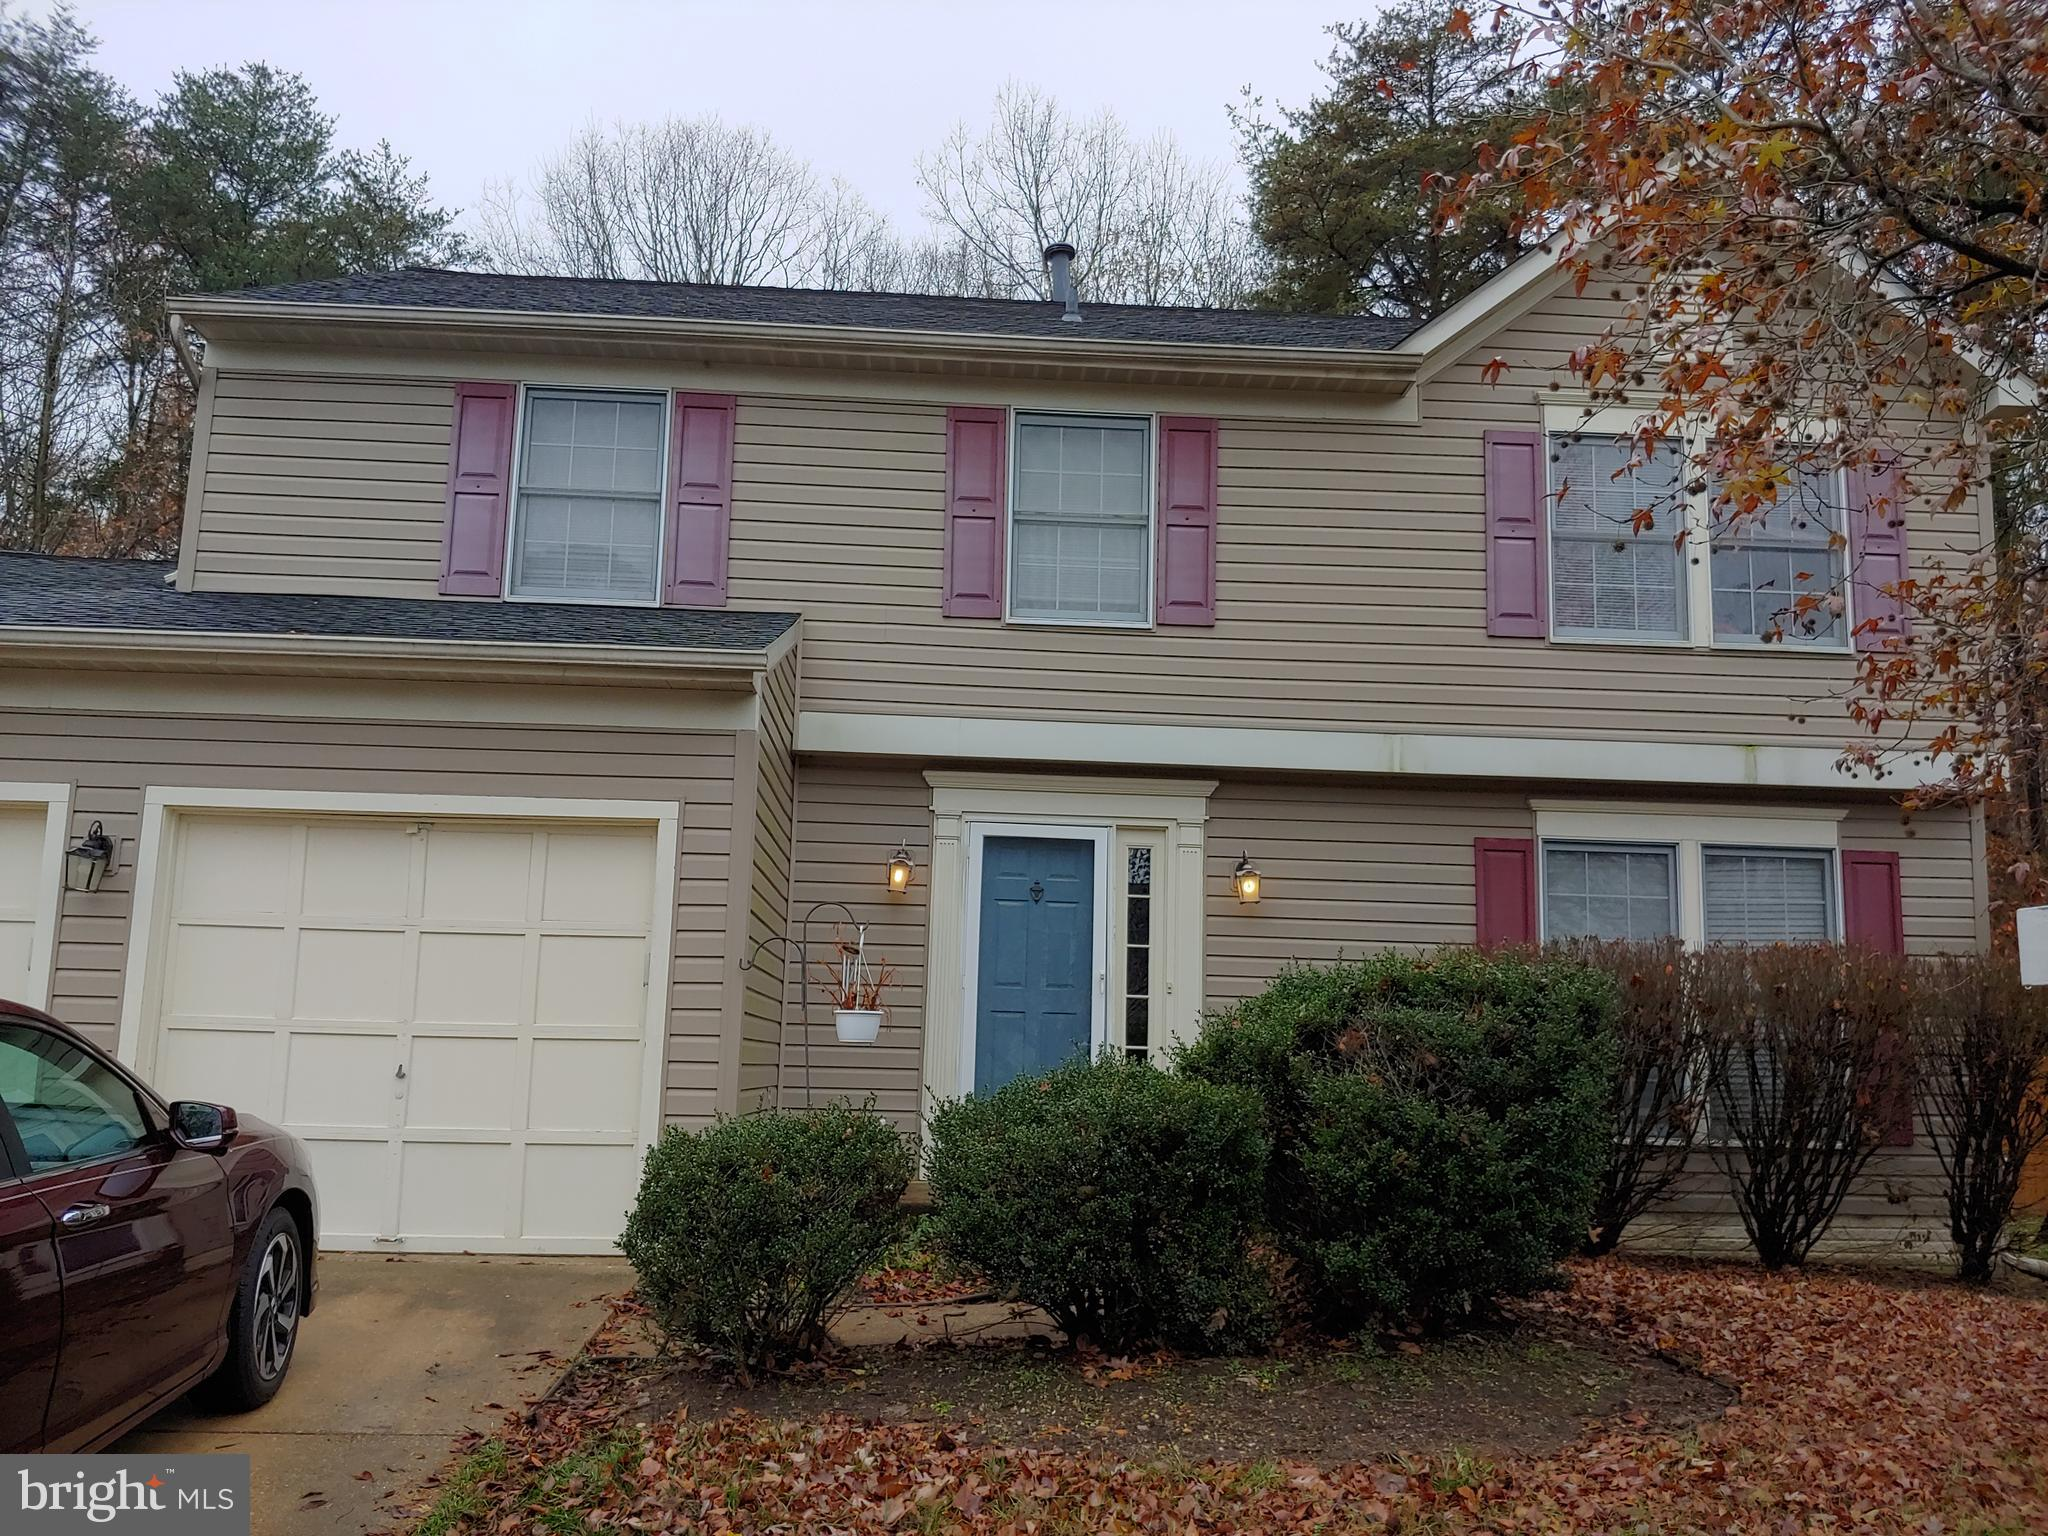 202 CHERRY HILL LANE, LAUREL, MD 20724